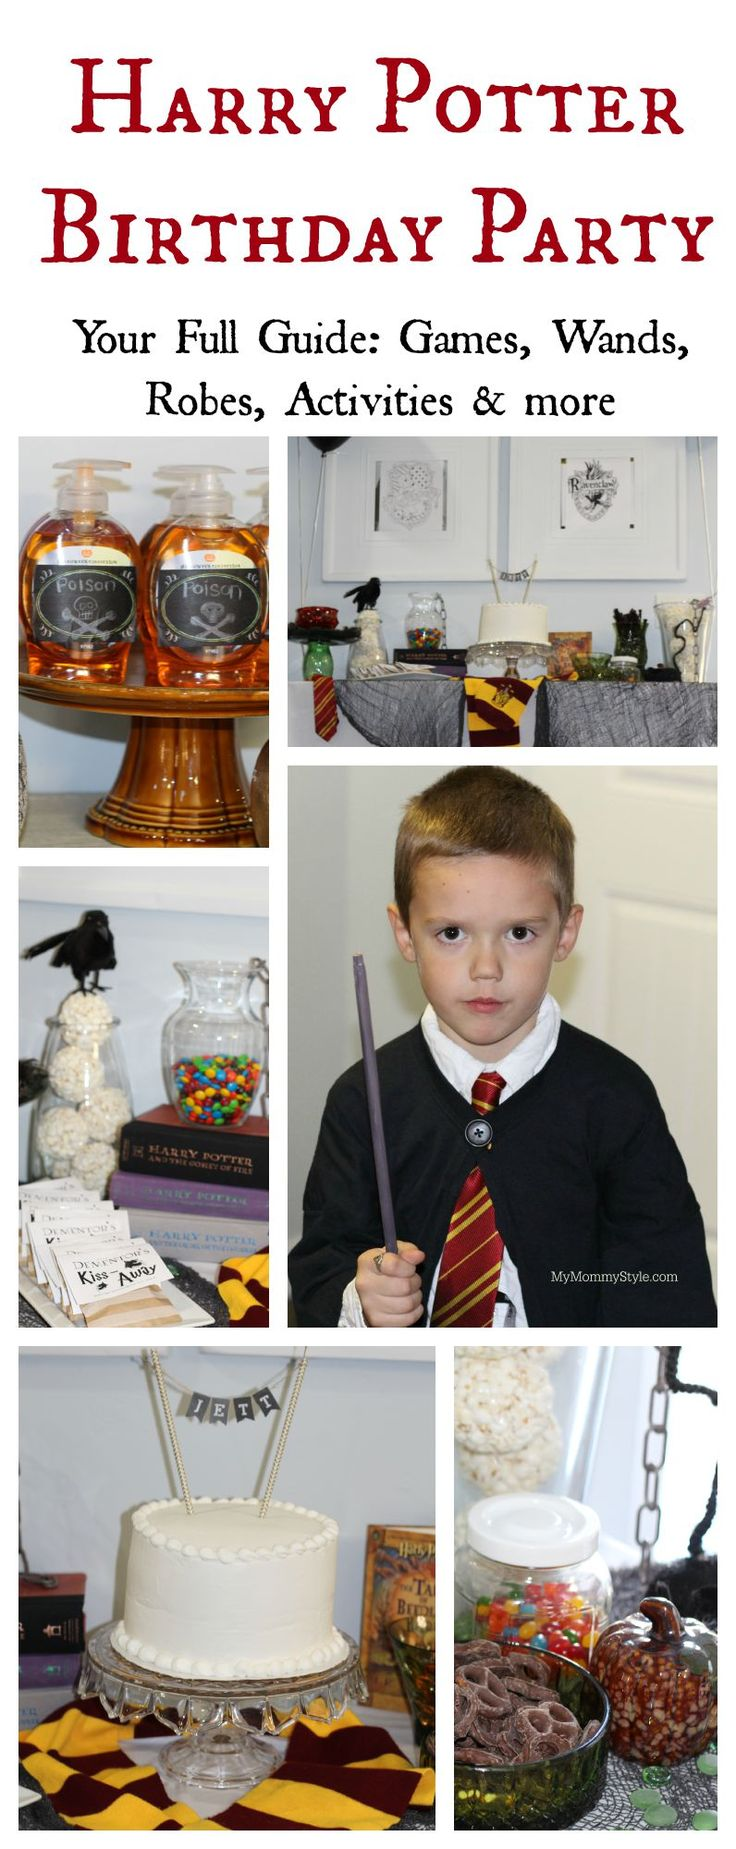 A complete Harry Potter birthday party that includes all of your guests, even the adults! So many fun ideas, my family would love this!